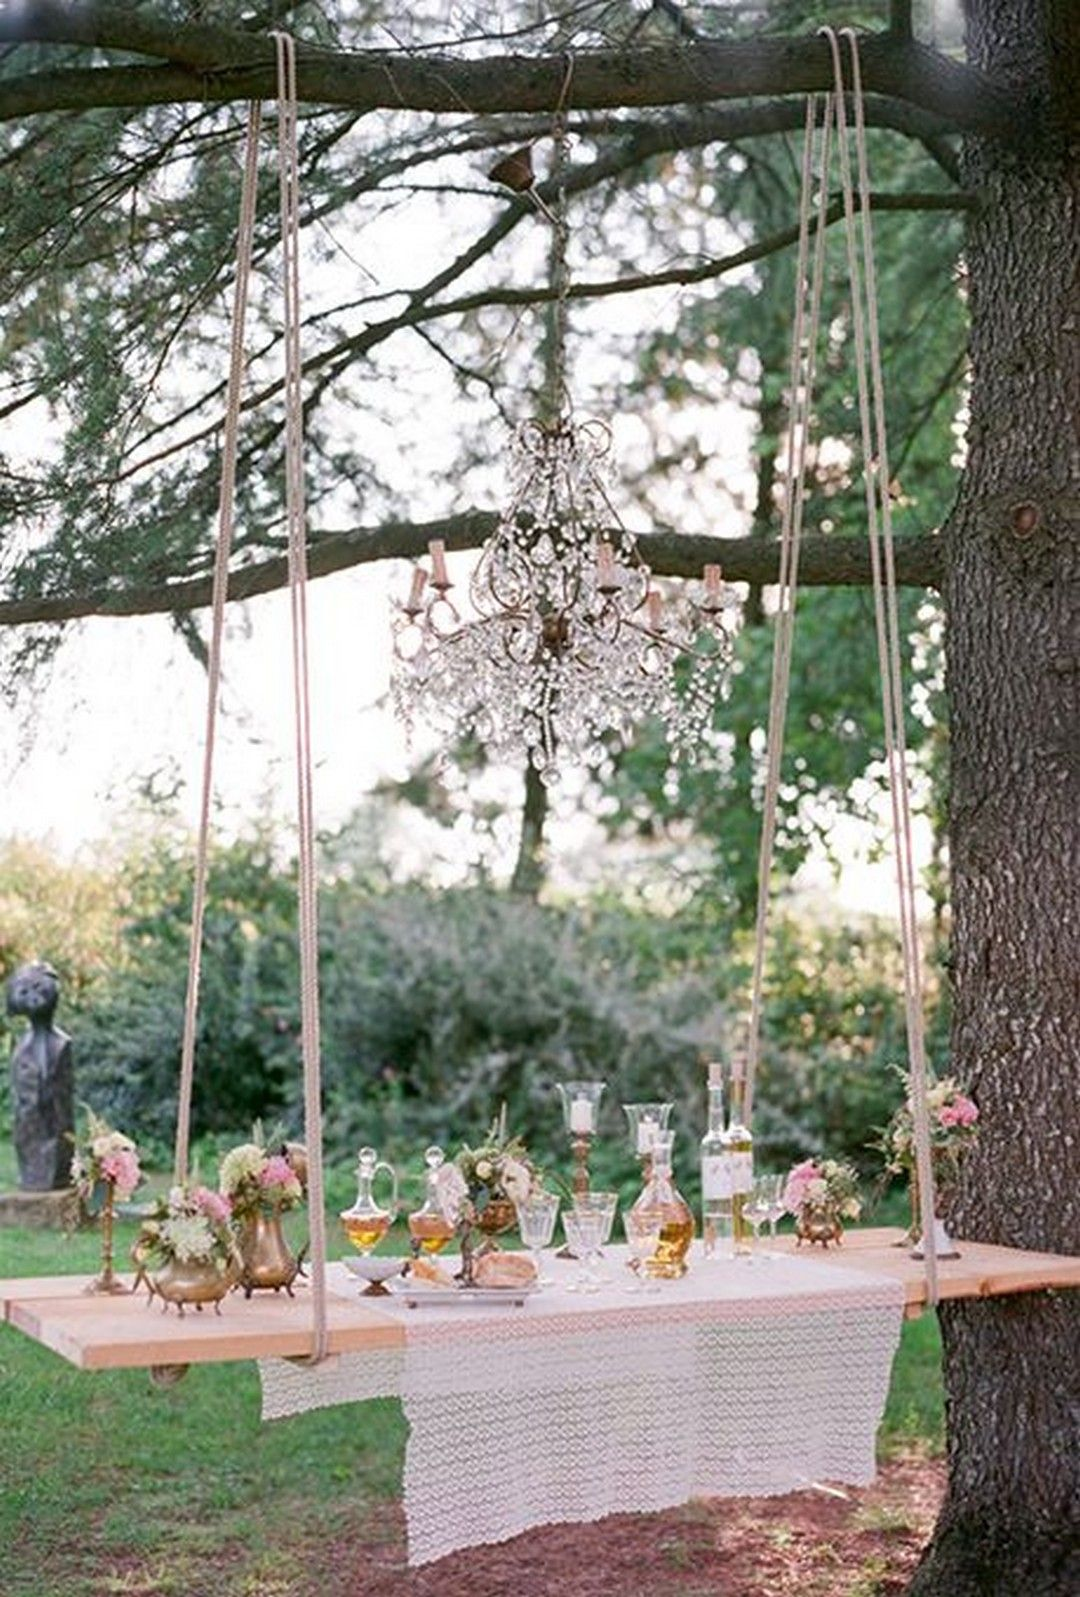 Garden Party Decor for Your Best Day Ever https://www